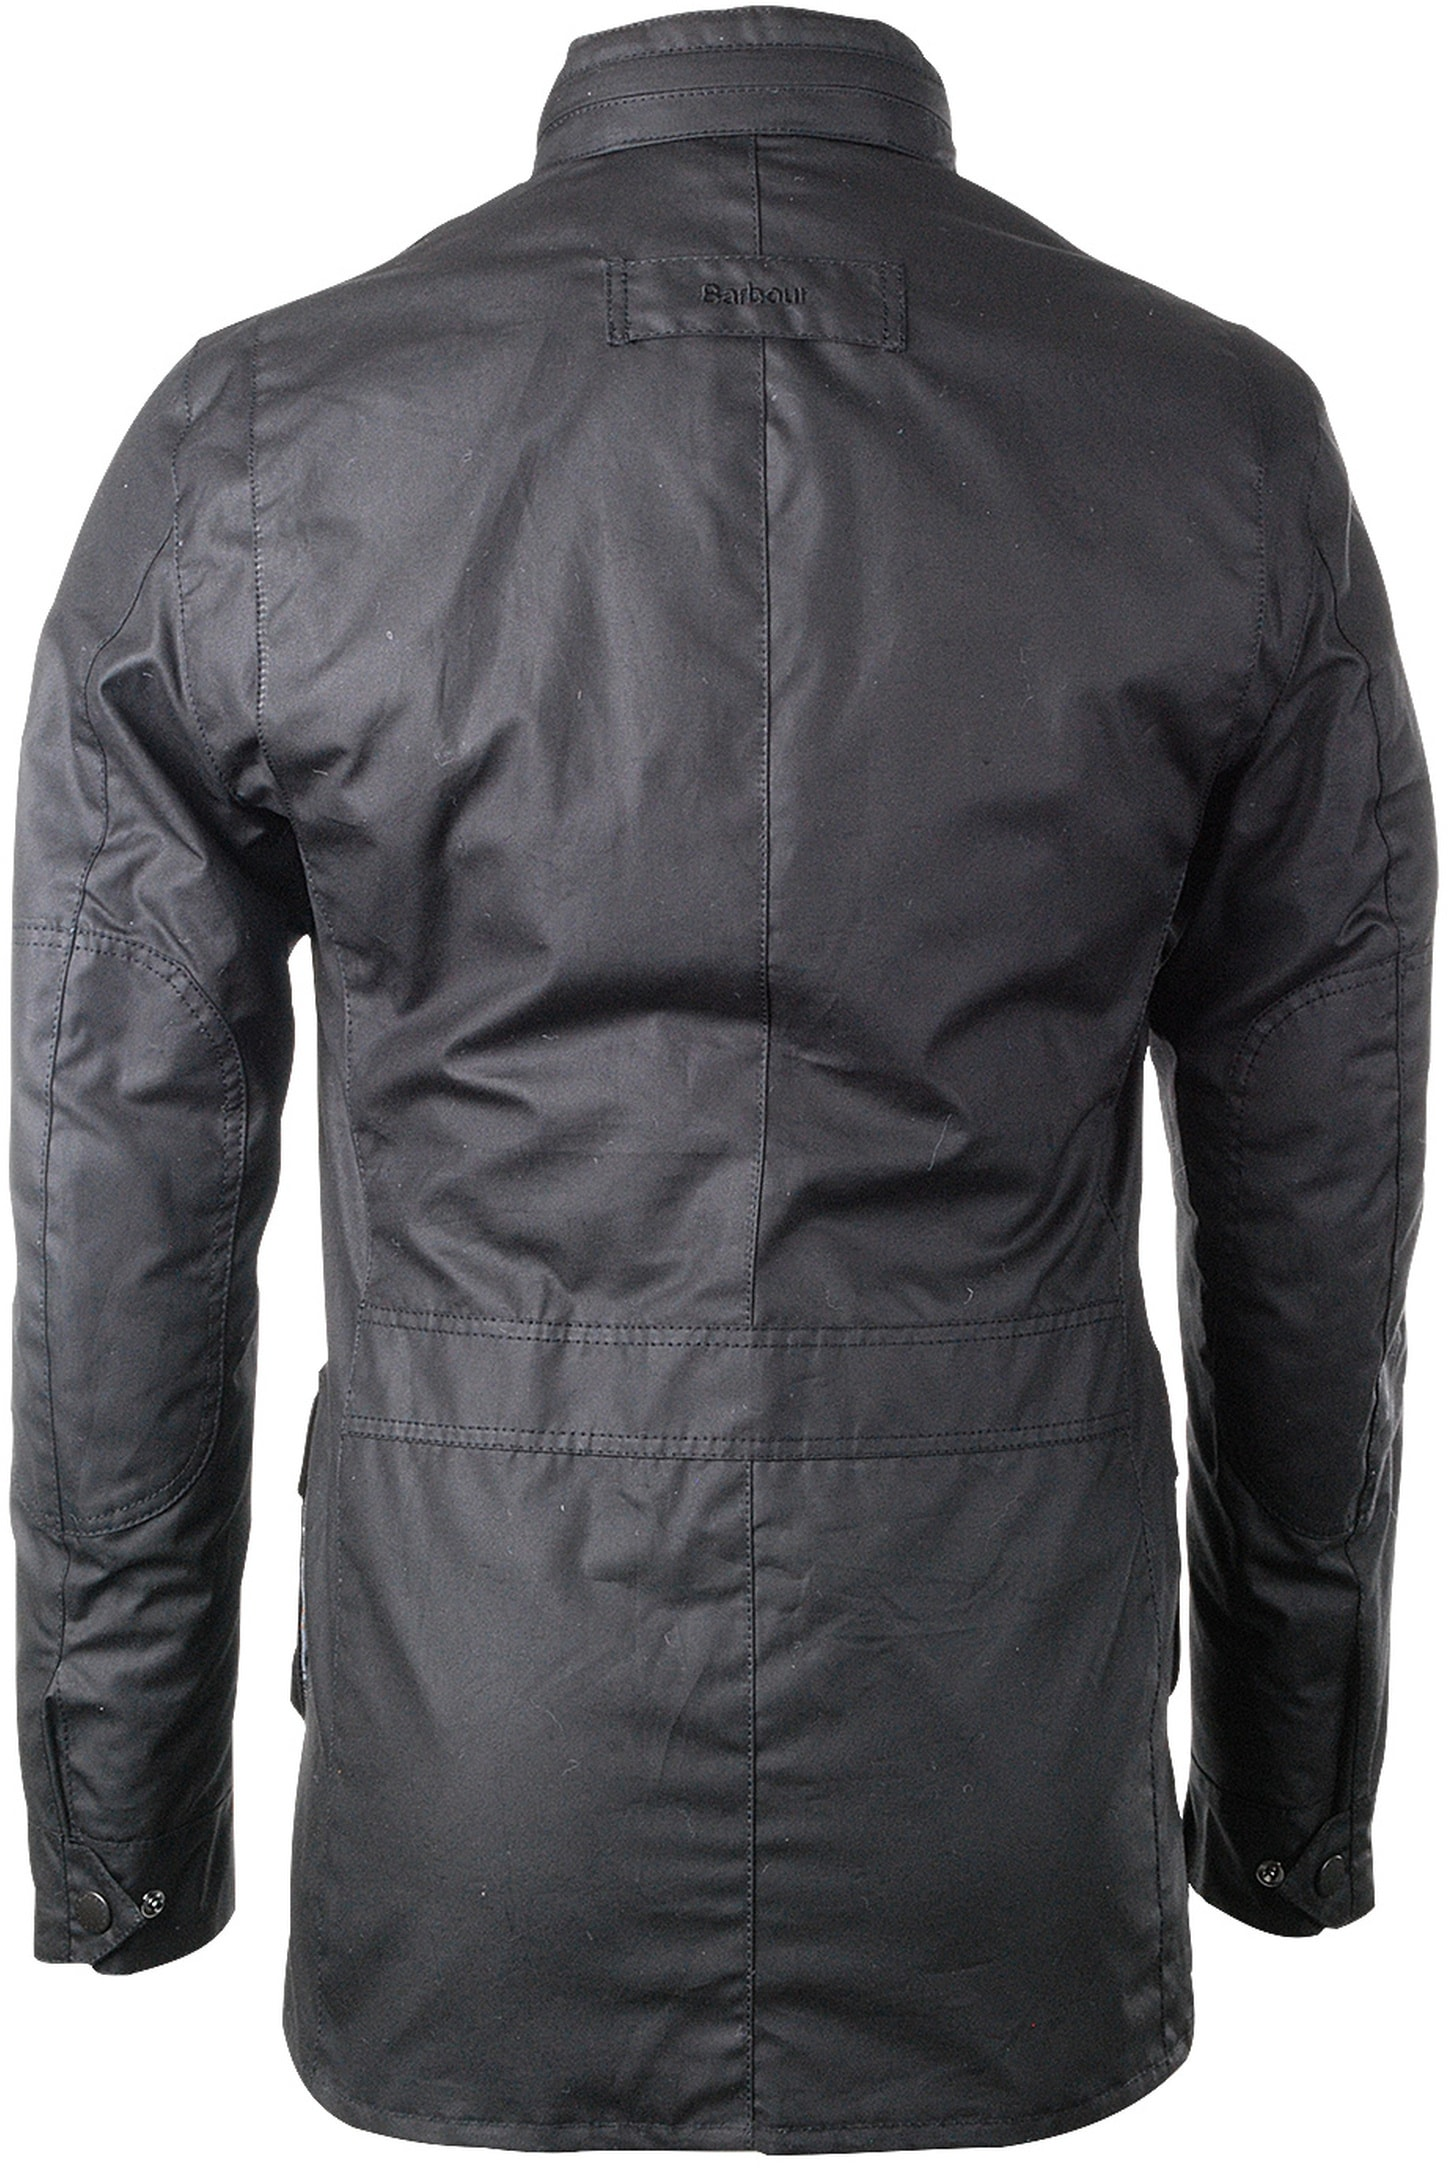 Barbour Waxjas Corbridge Zwart foto 1